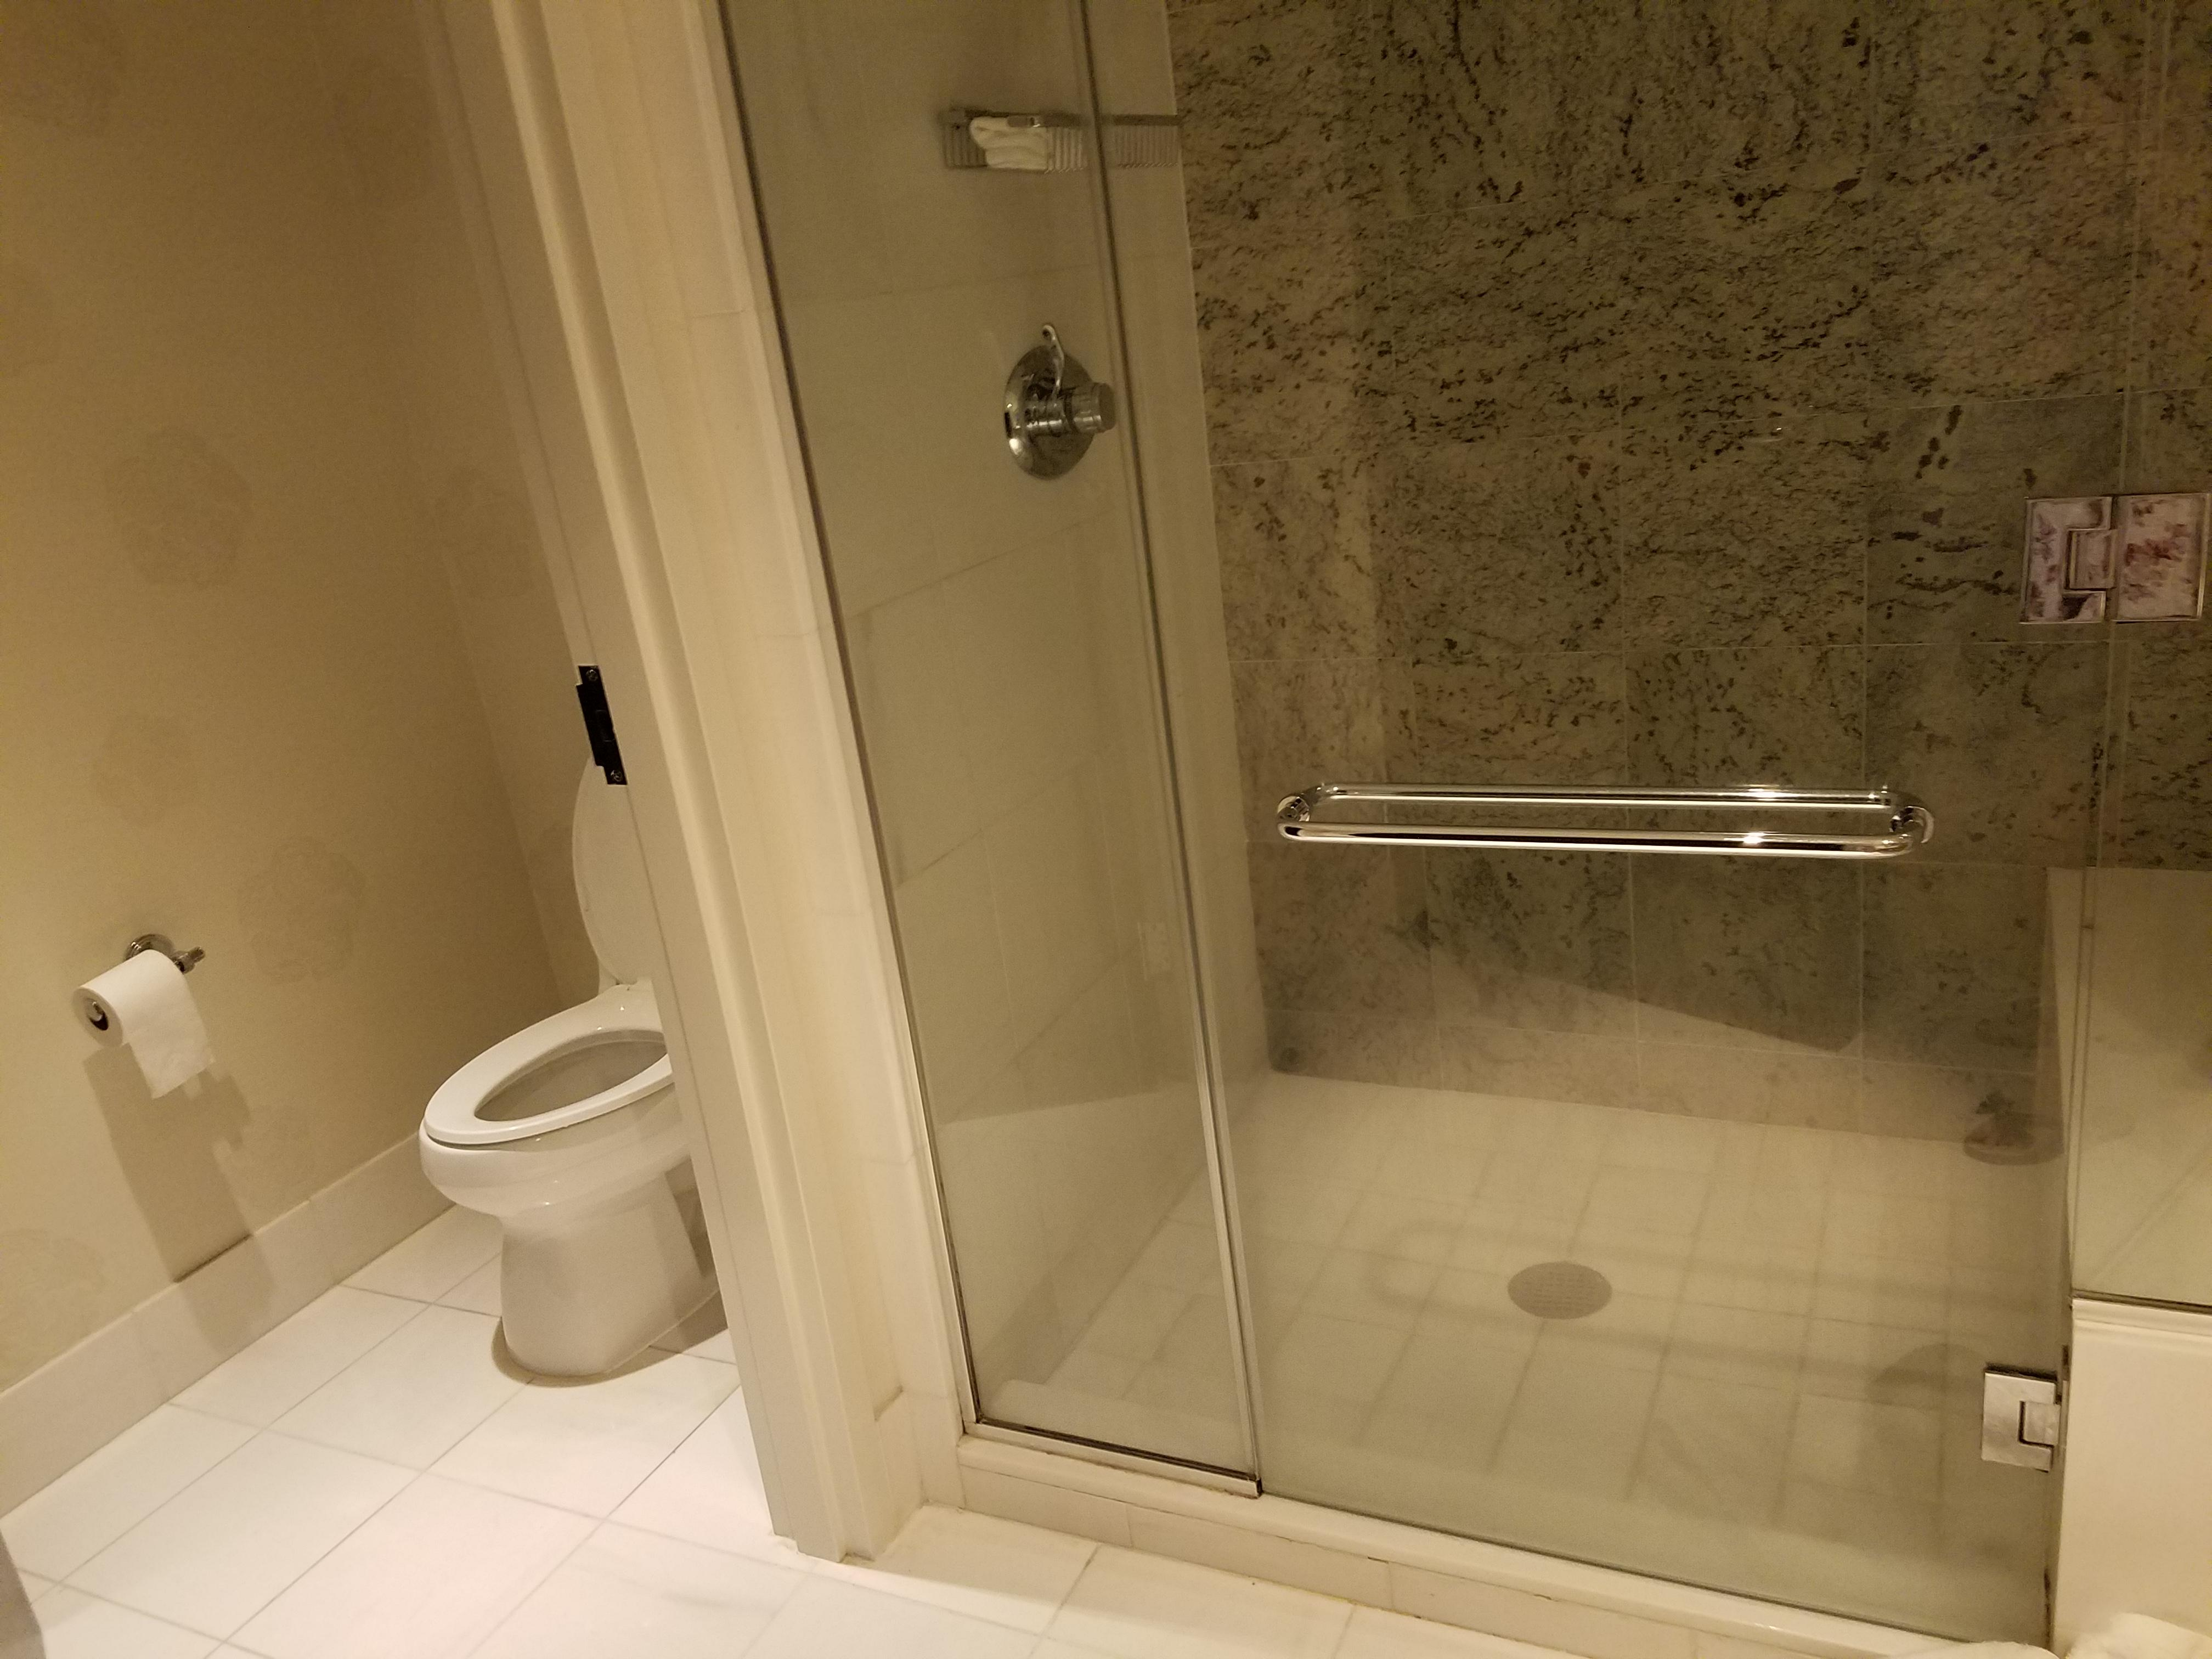 shower and bathroom seperated